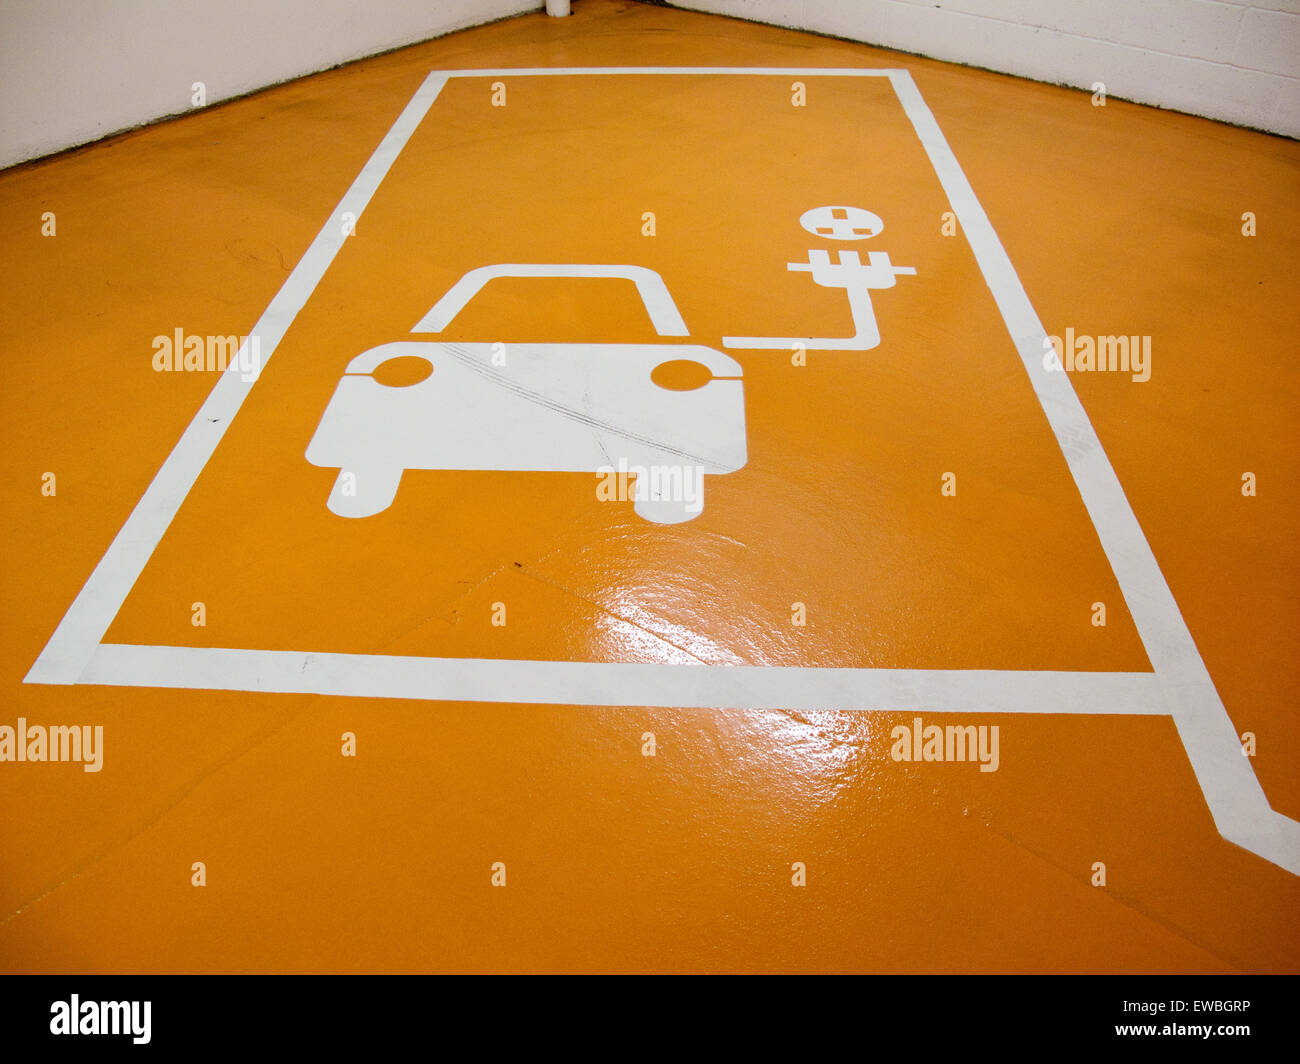 Car parking space for electric vehicles Stock Photo